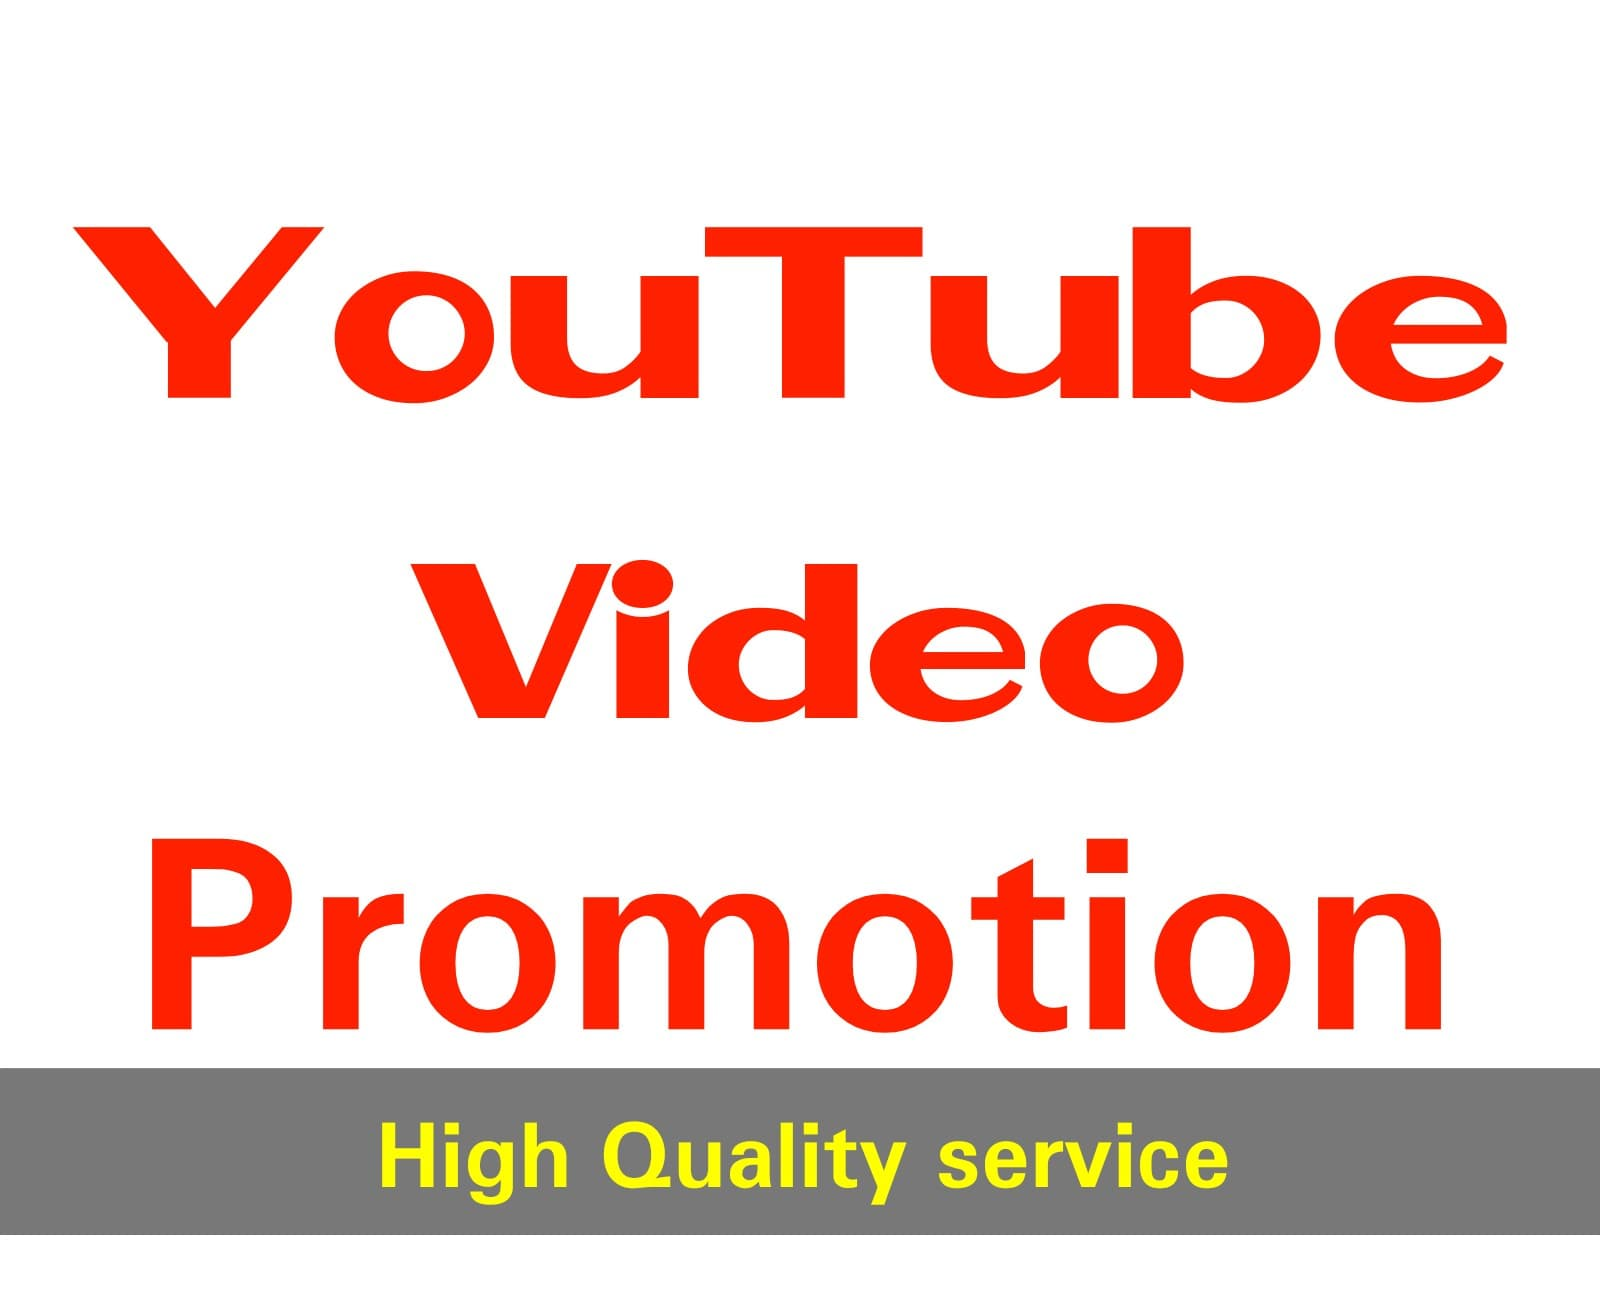 Quickly YouTube Video Marketing Promotion Noon Dropped Guaranteed